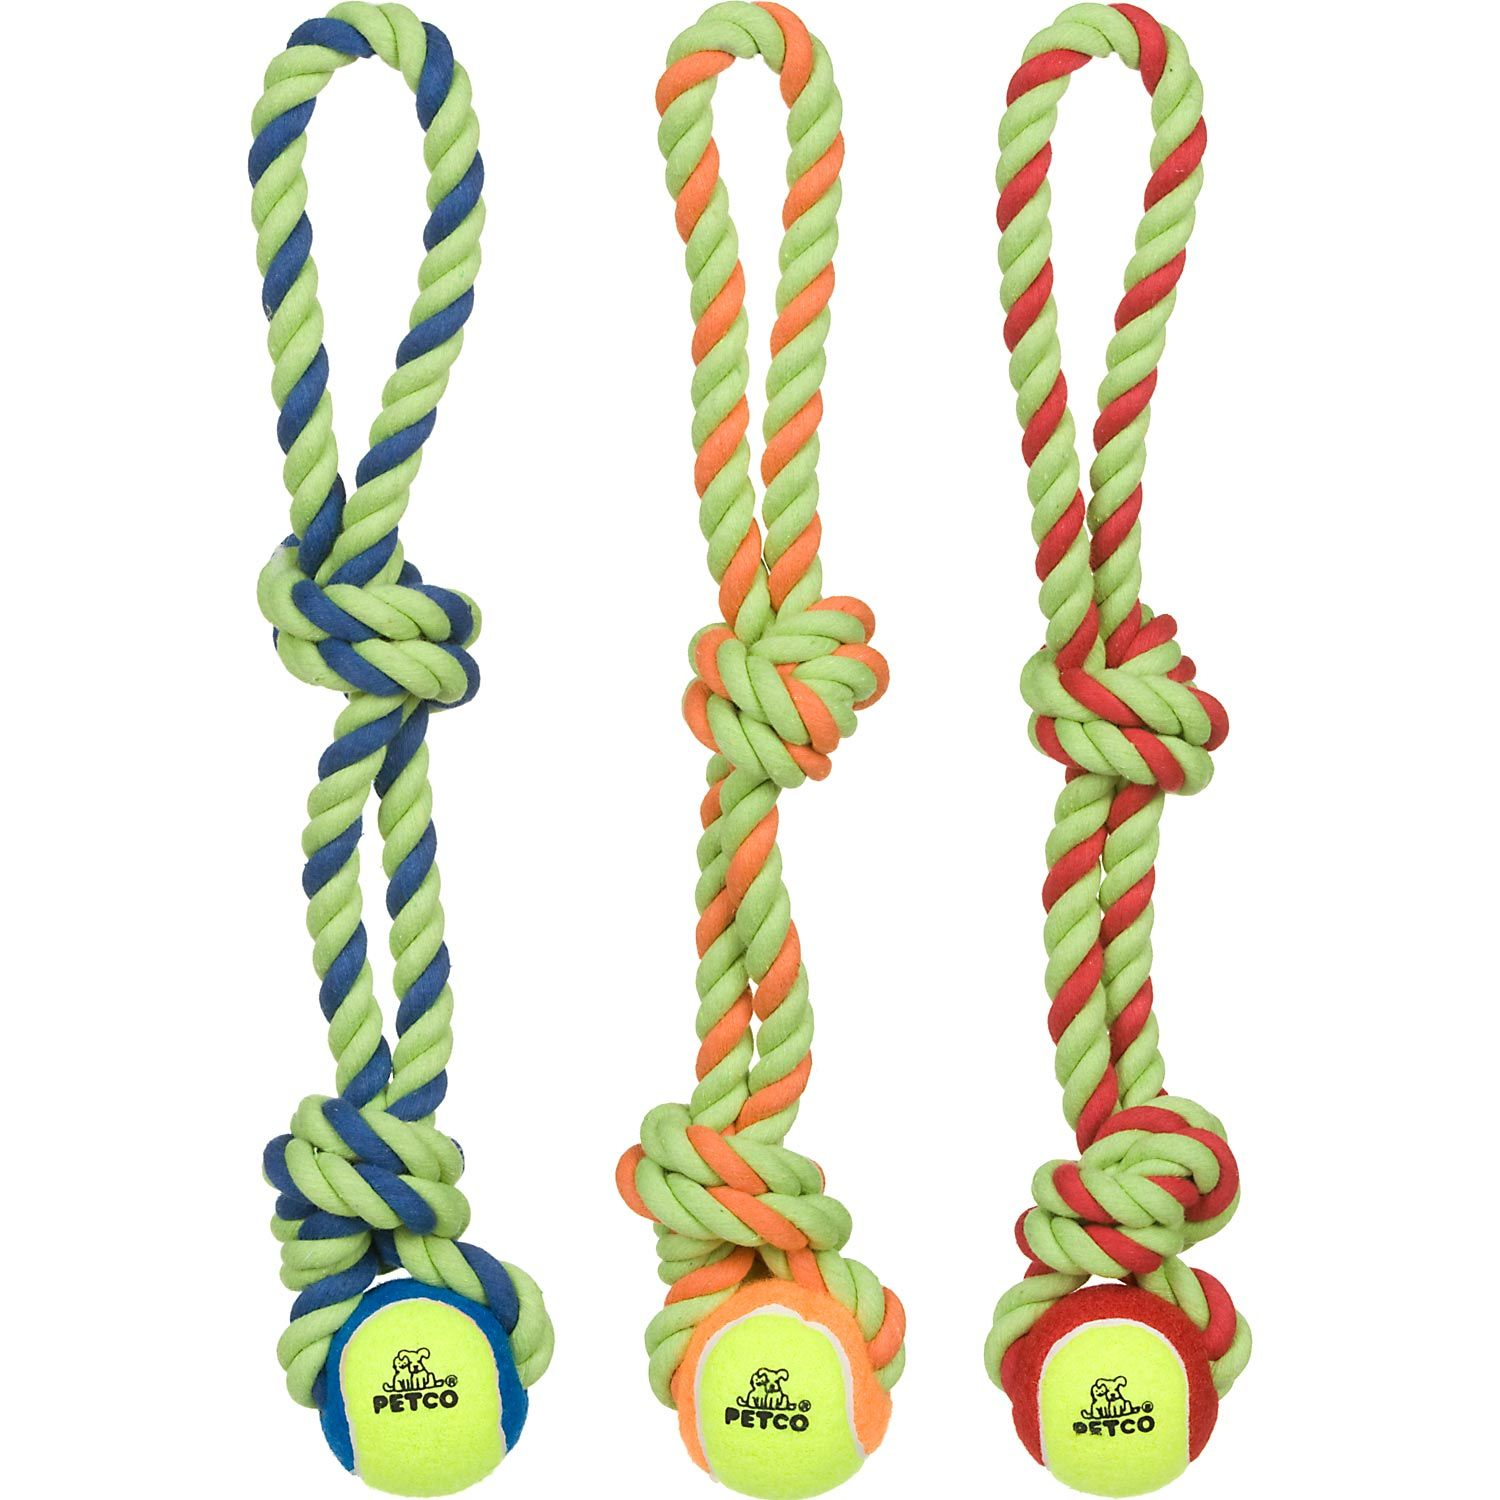 Petco Tennis Ball with Rope Tug Dog Toy Dogs Pinterest